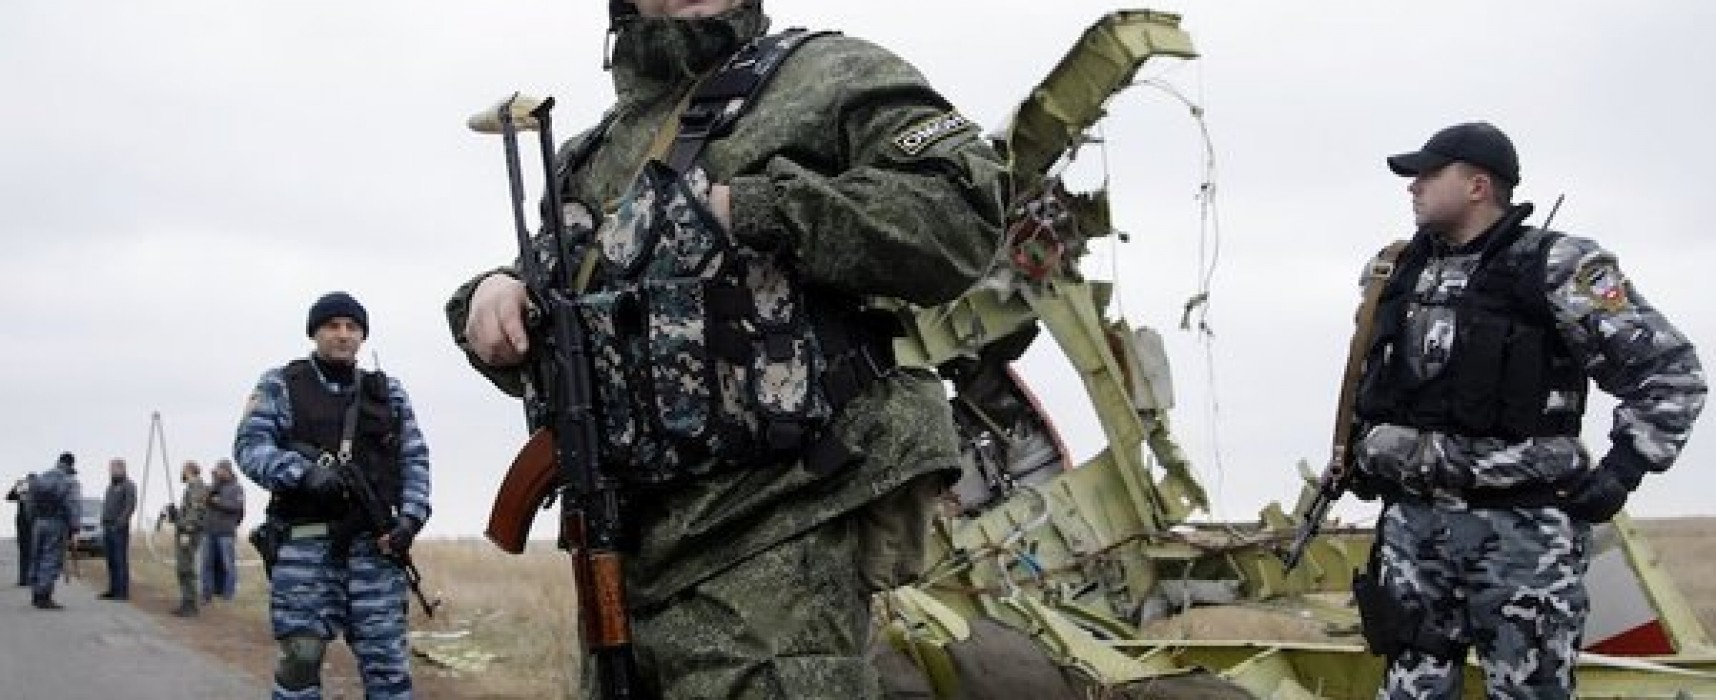 Flight MH17: Will Russia Get Away With It?